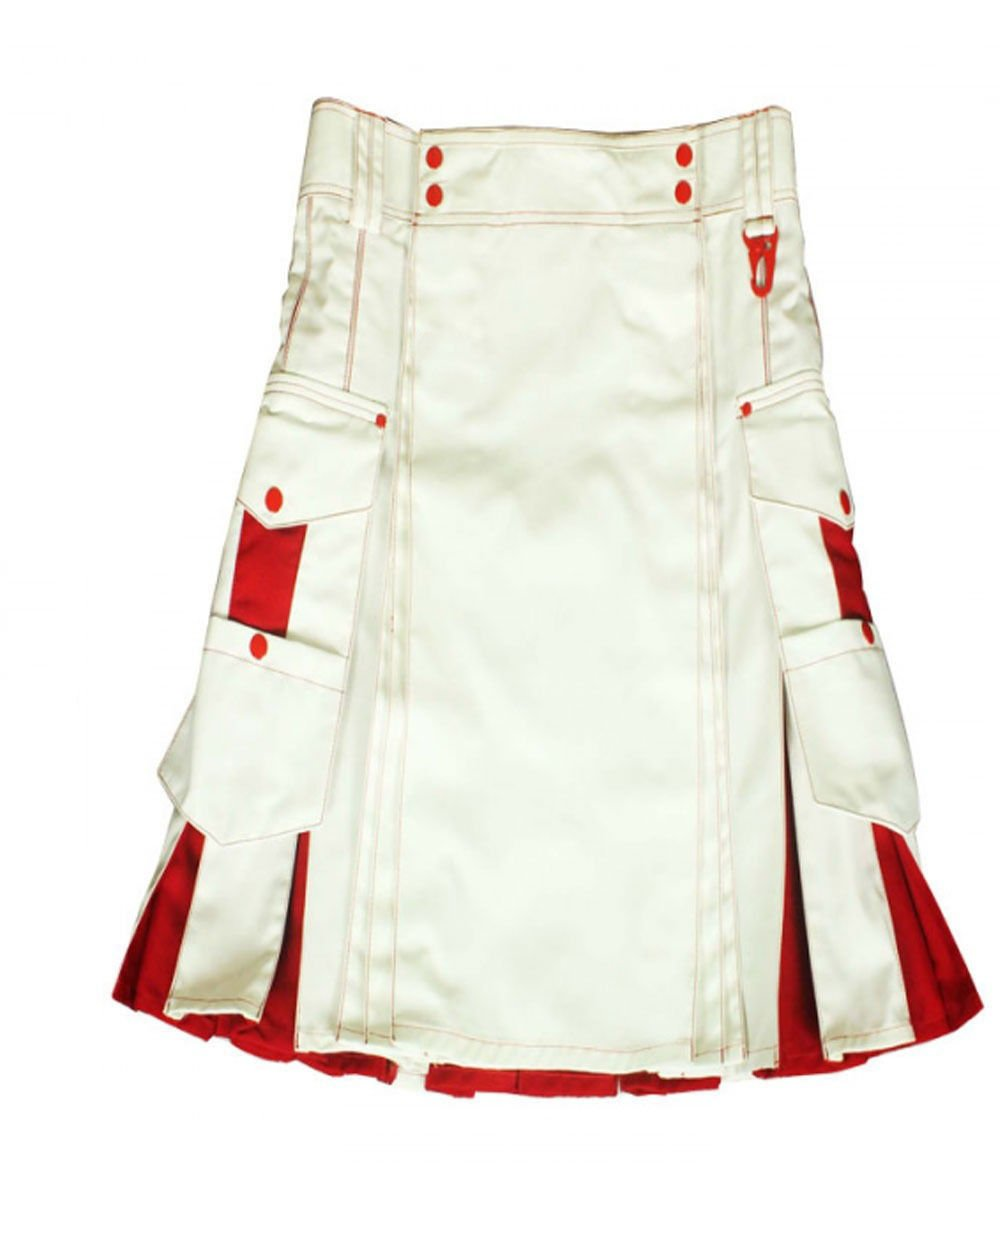 50 Size Handmade White & Red Cotton Kilt for Active Men, Hybrid Cotton Utility Deluxe Kilt